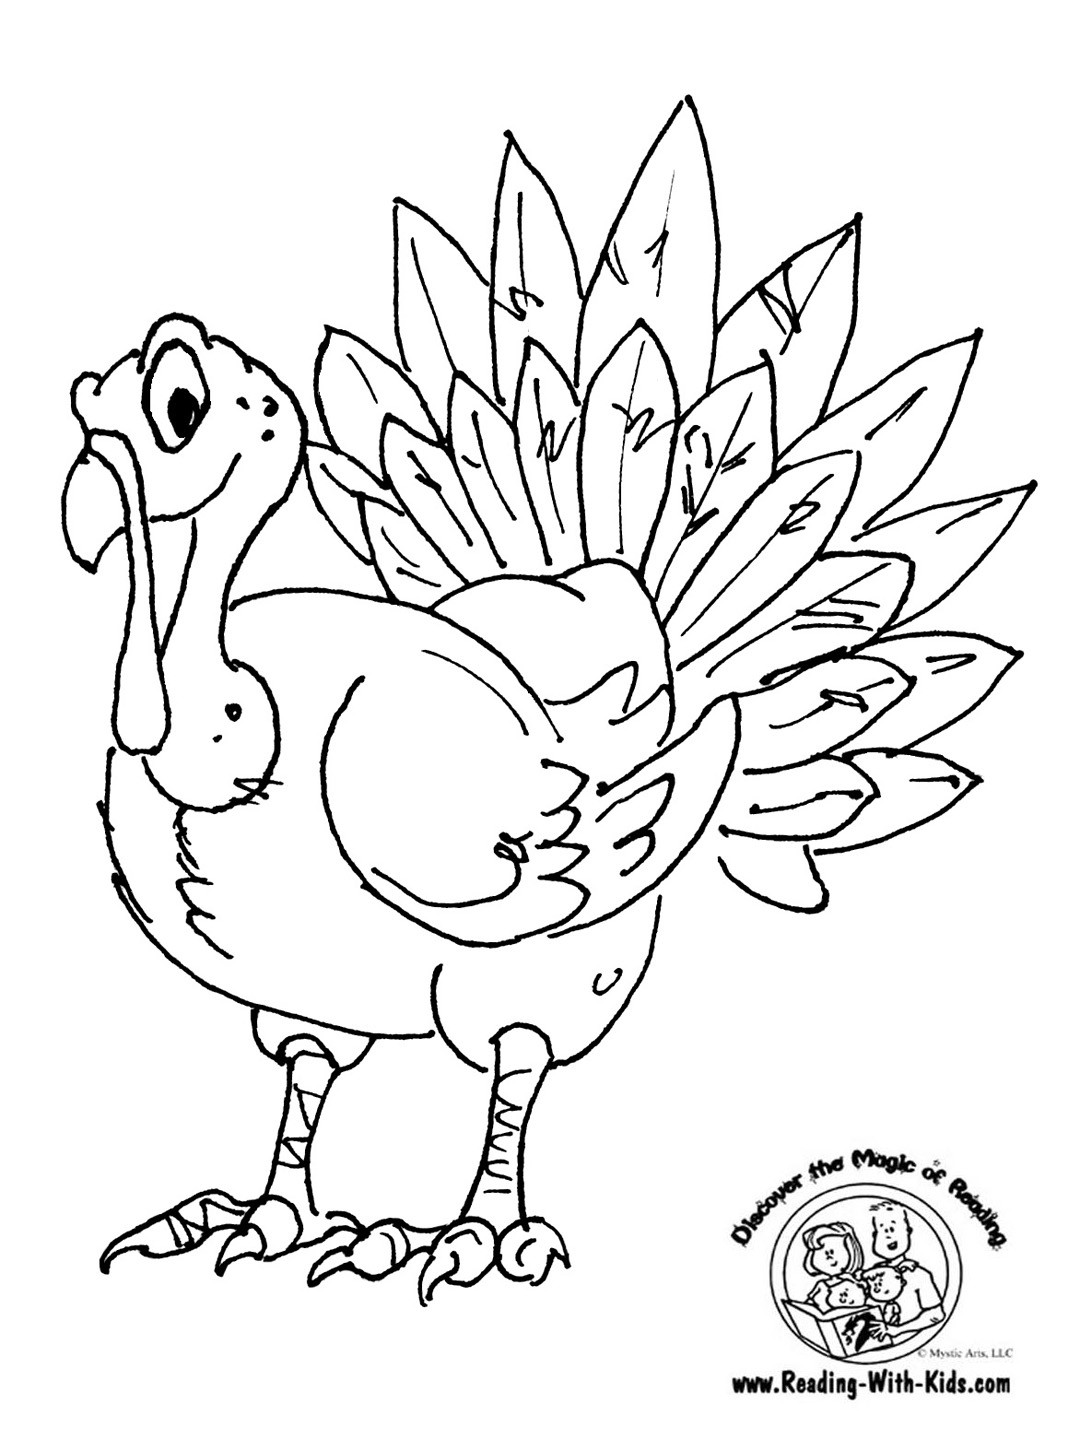 Thanksgiving Turkey To Color  Category Thanksgiving Crafts Getting Crafty with Kerns